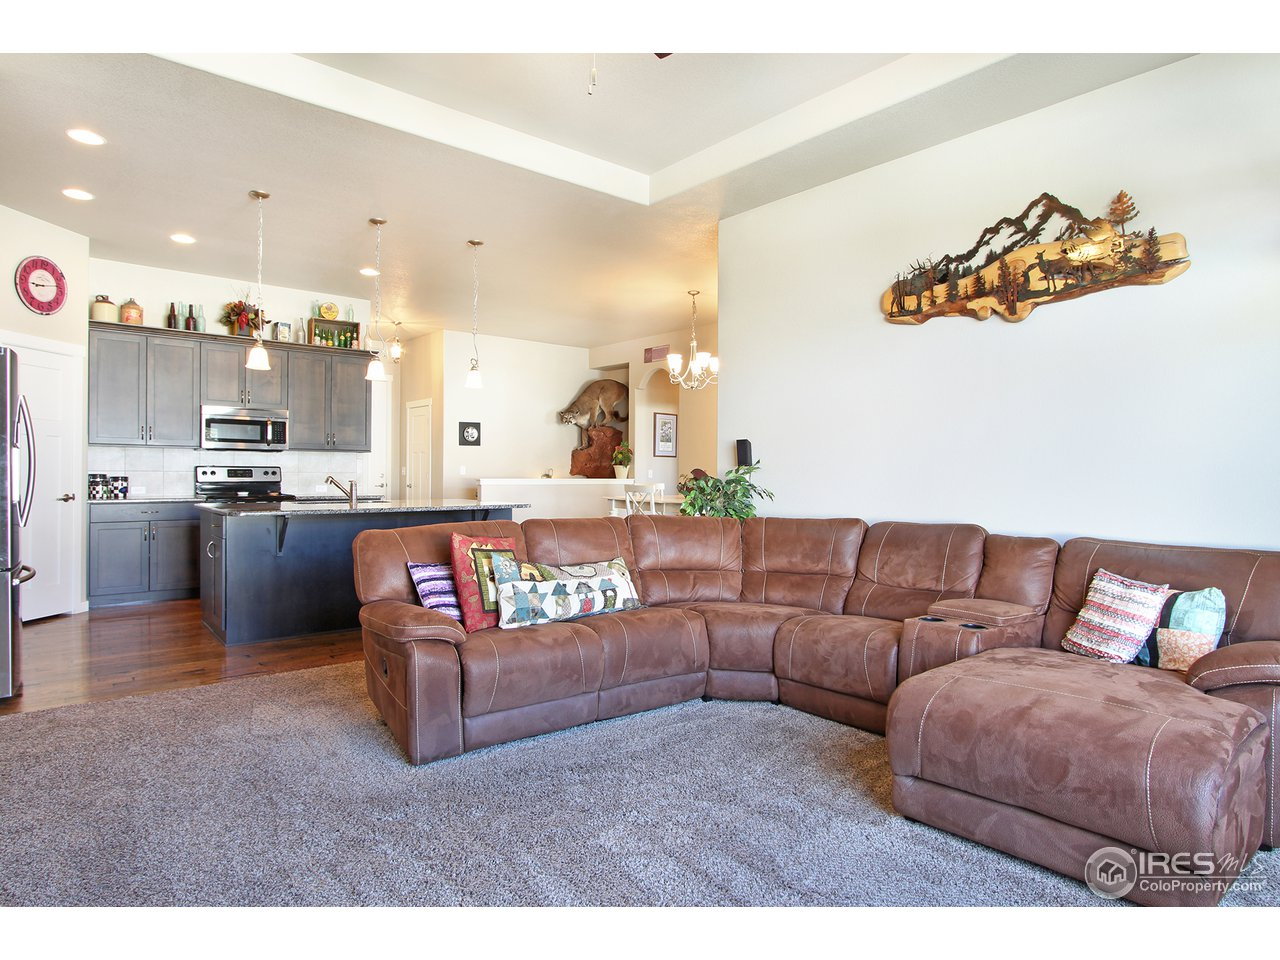 Great room, perfect for entertaining